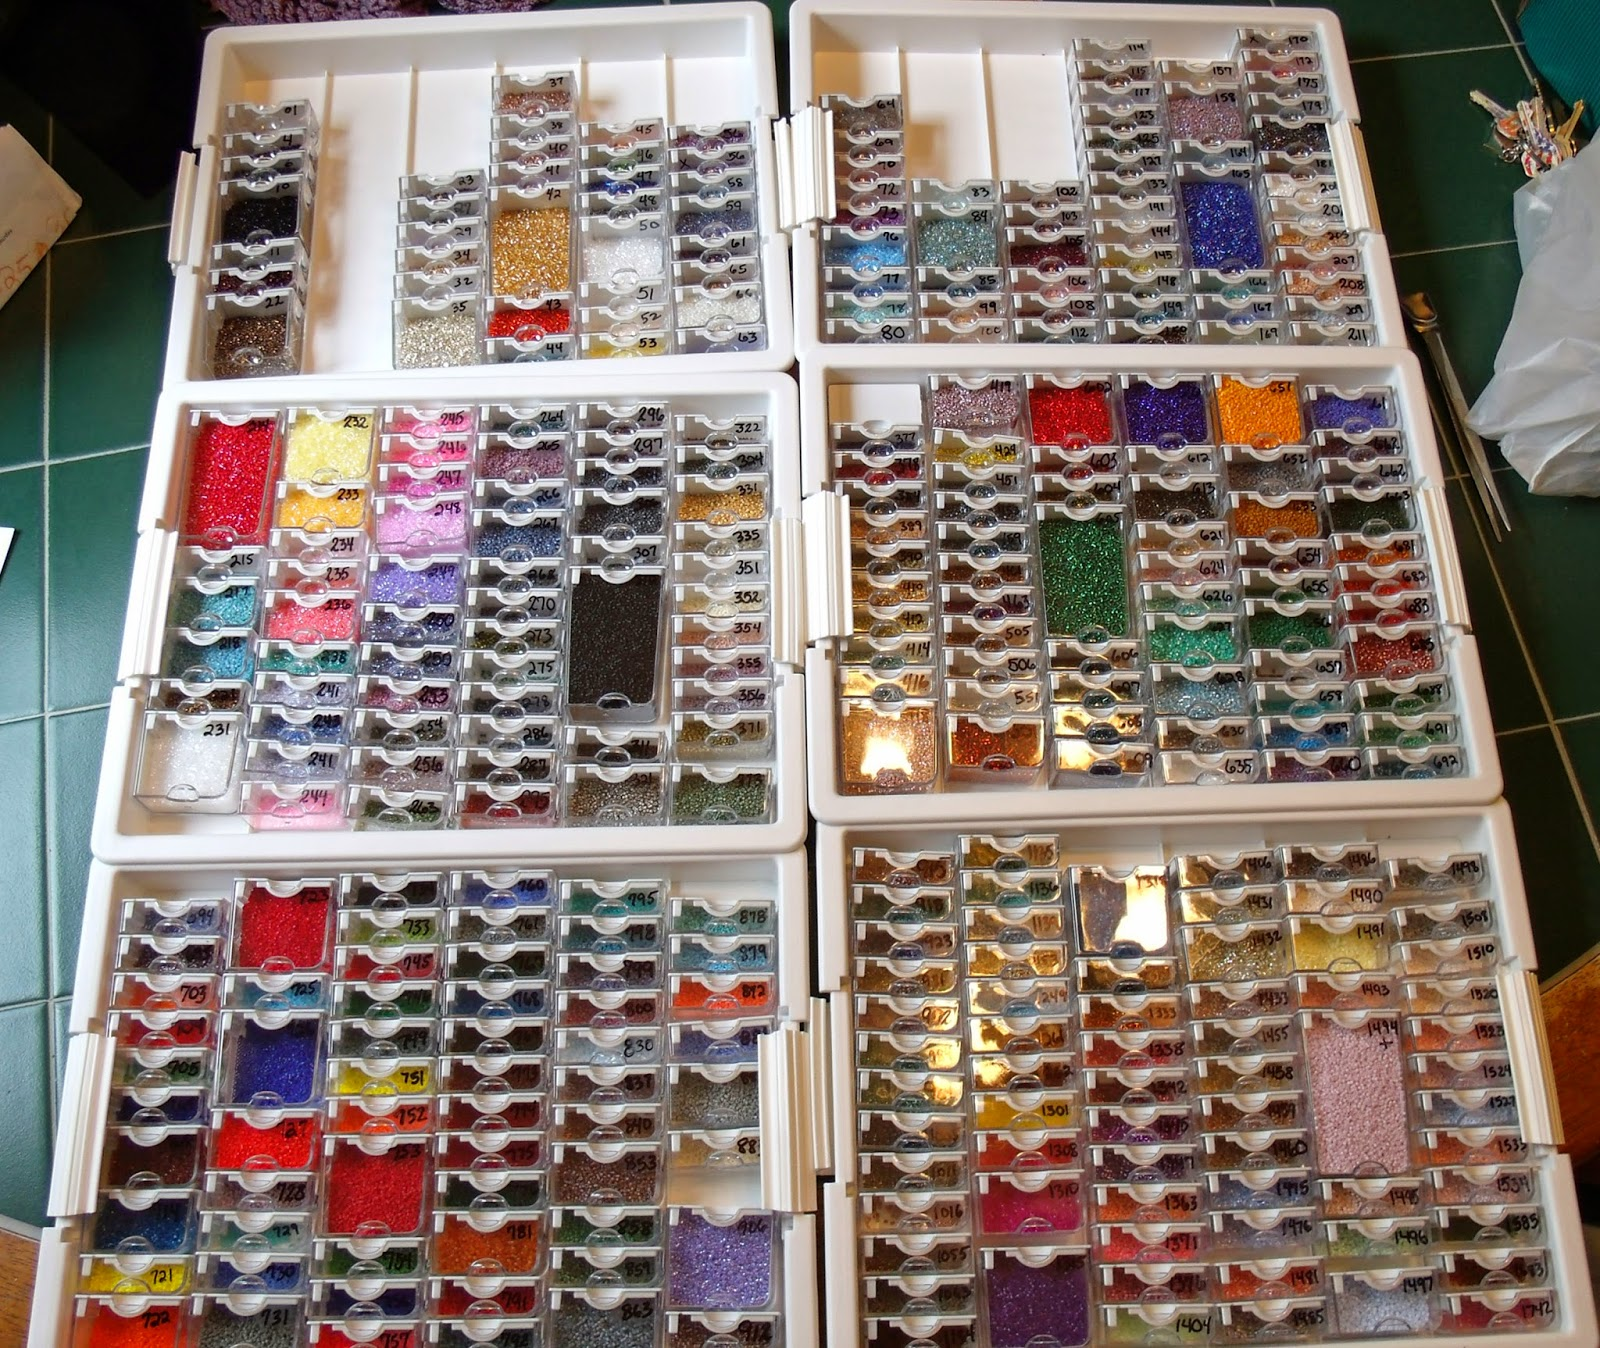 http://www.firemountaingems.com/Shop/beadstoragesolutions-Storage?ItemsPerPage=20&SortBy=BestMatch